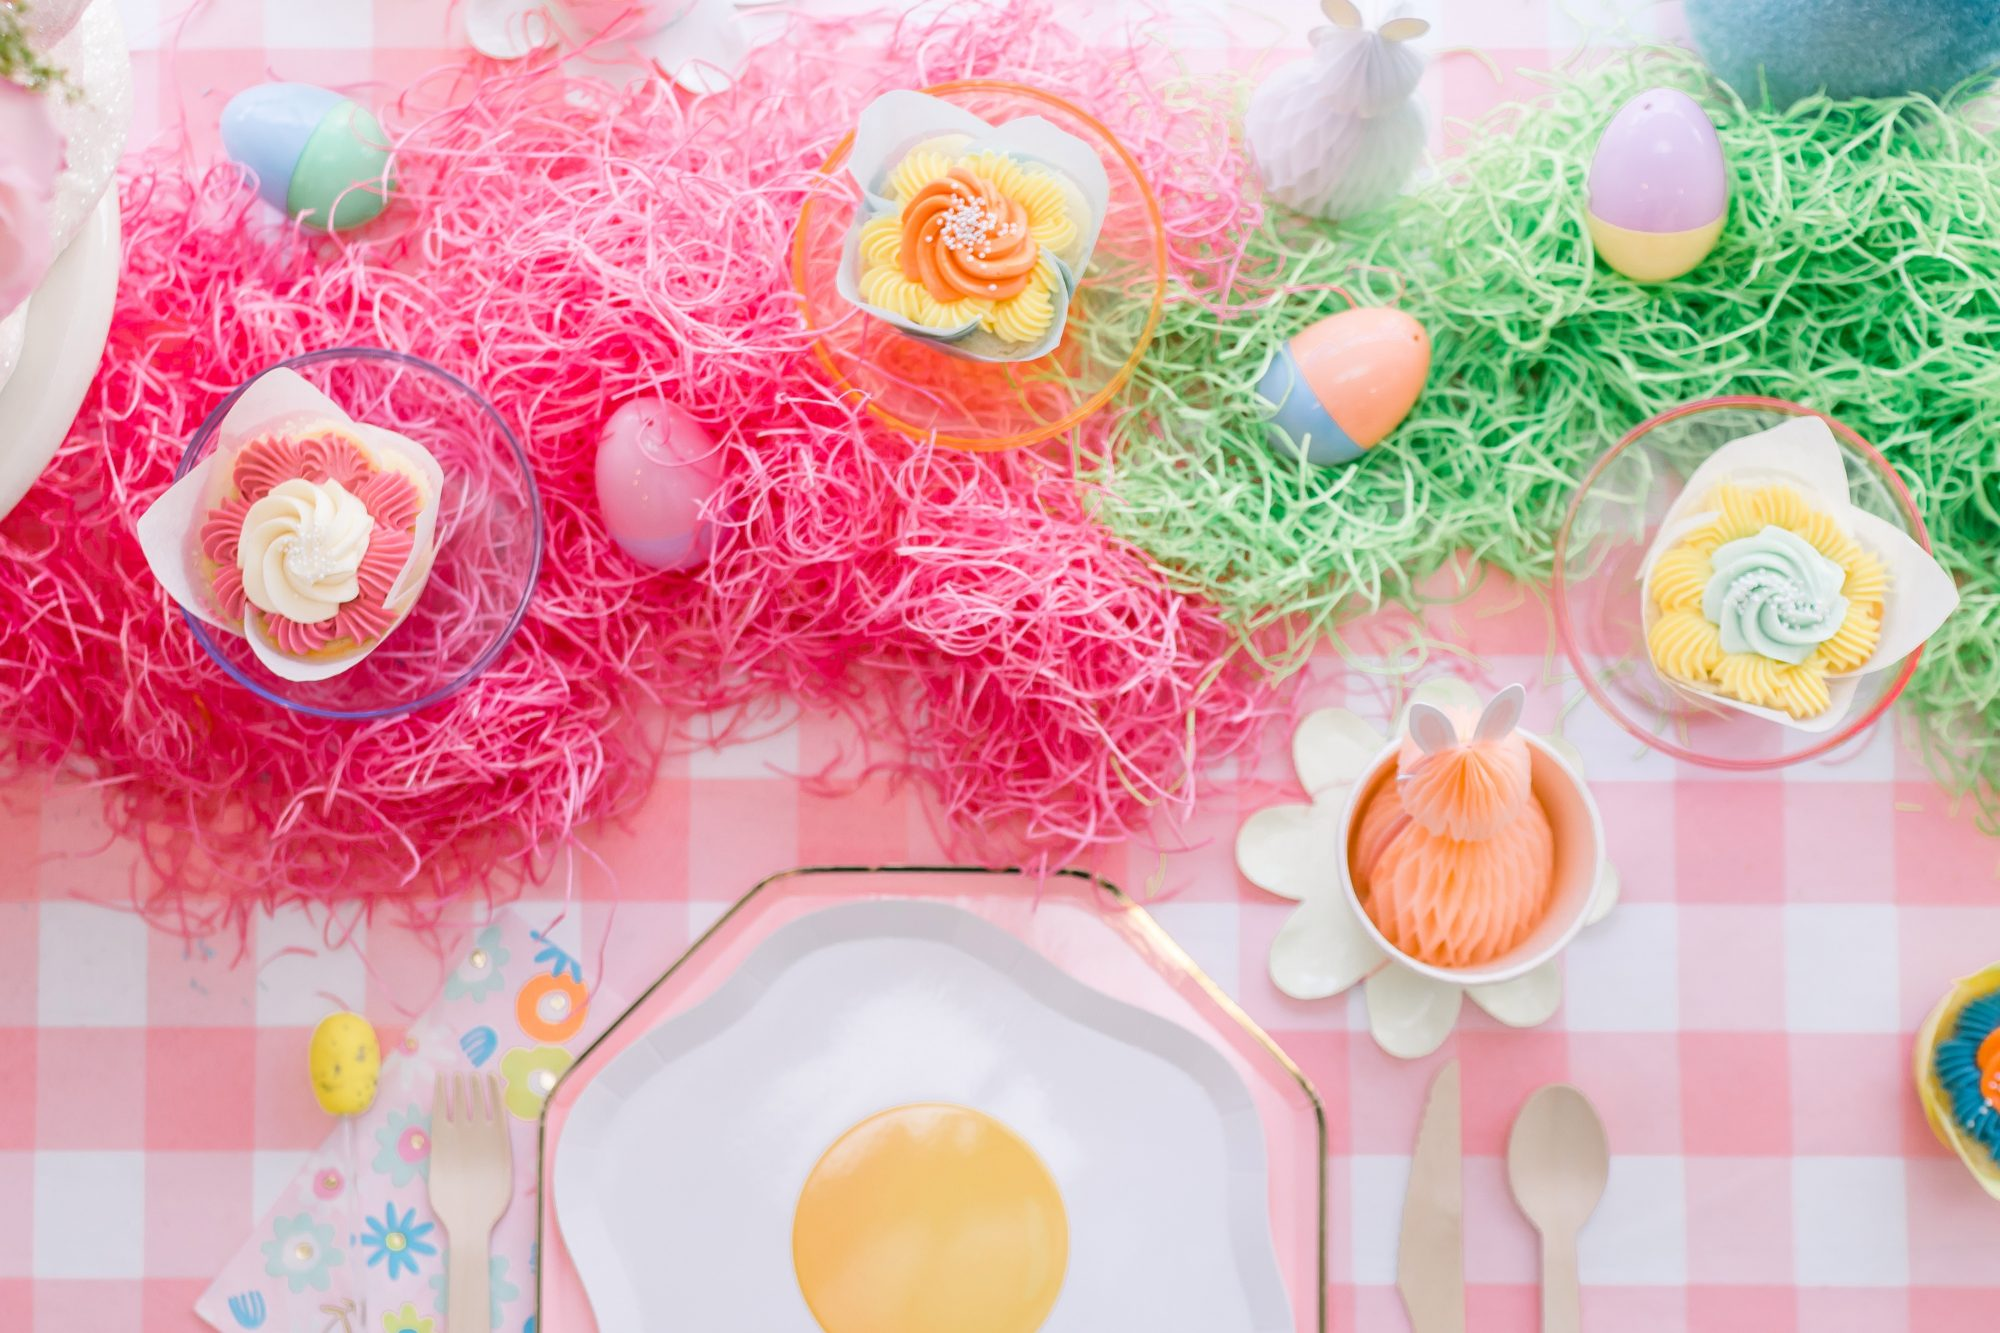 easter candy on cheerful table setting